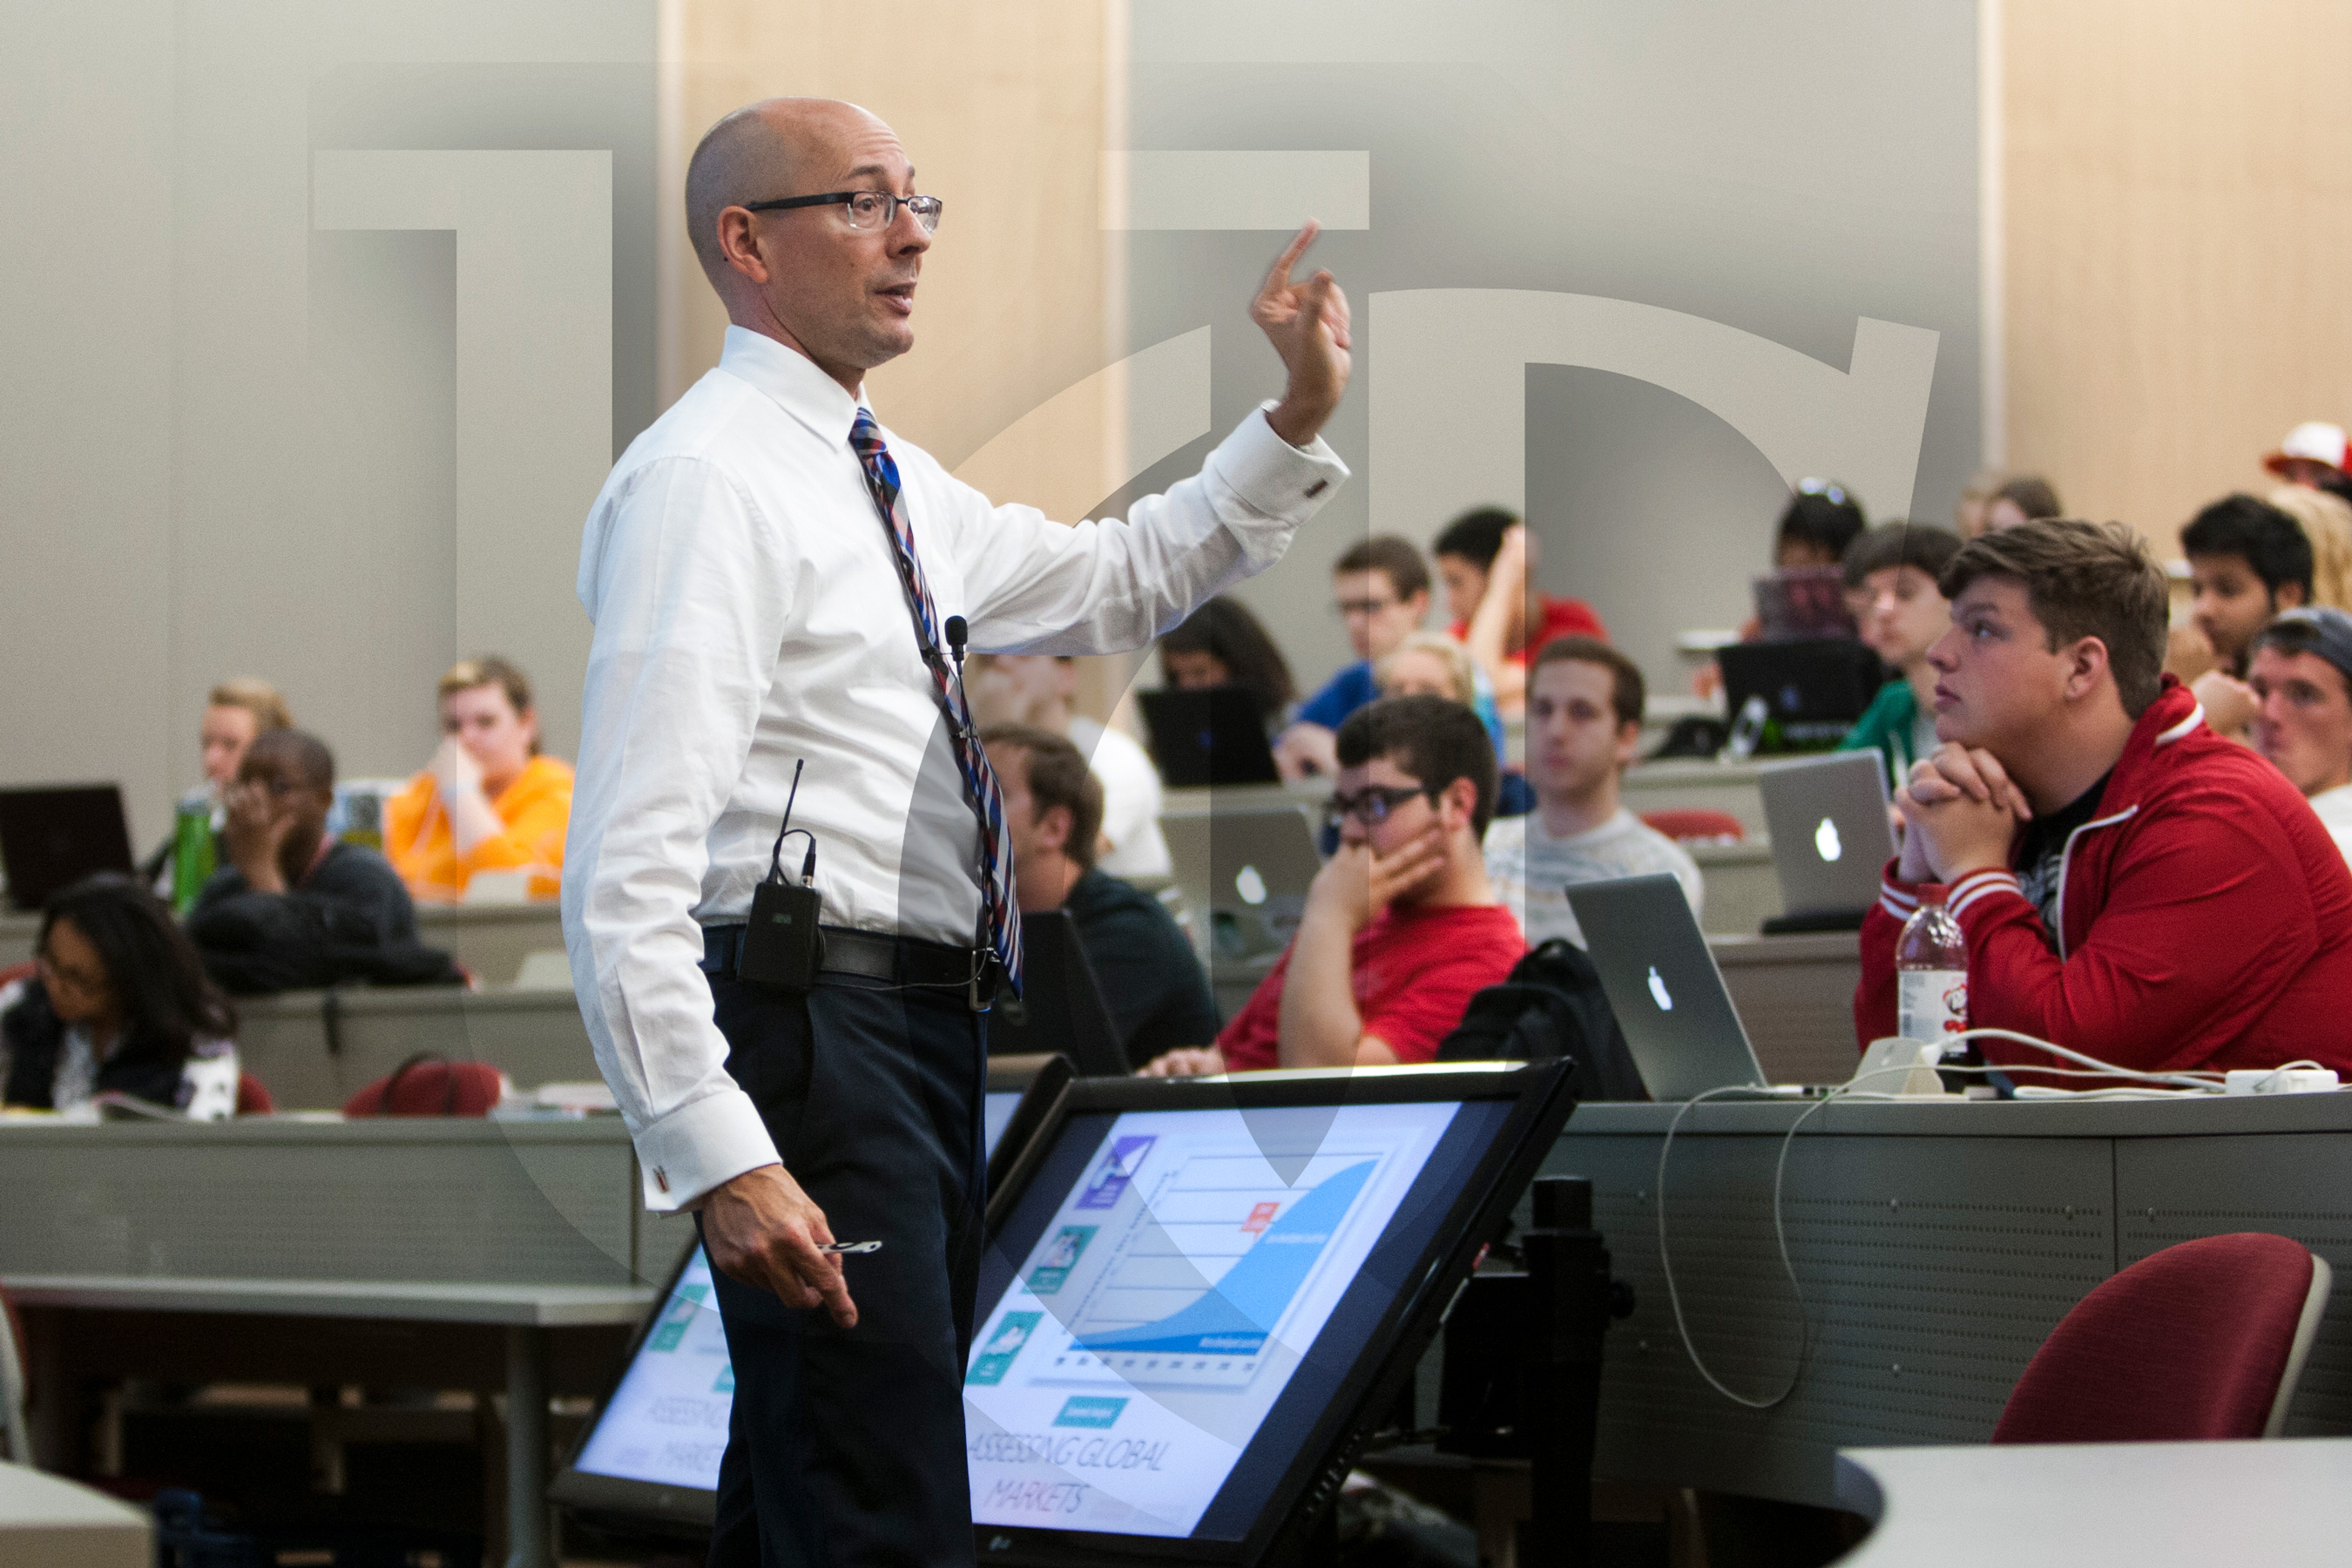 A UC professor speaks in a lecture hall